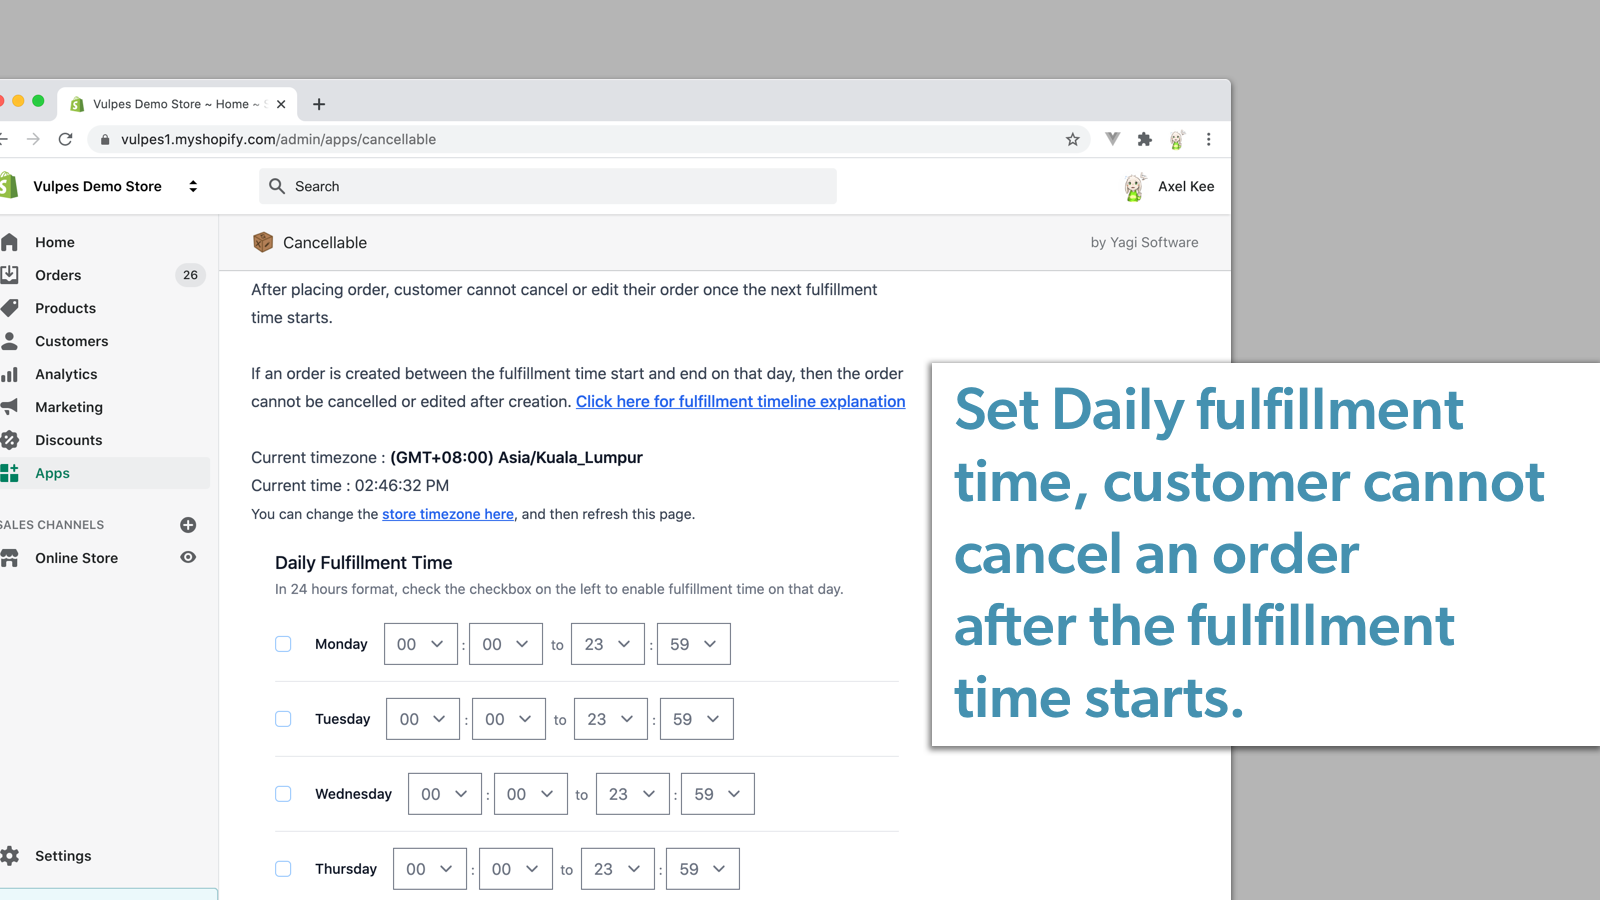 Customizable fulfillment time to disable cancellation